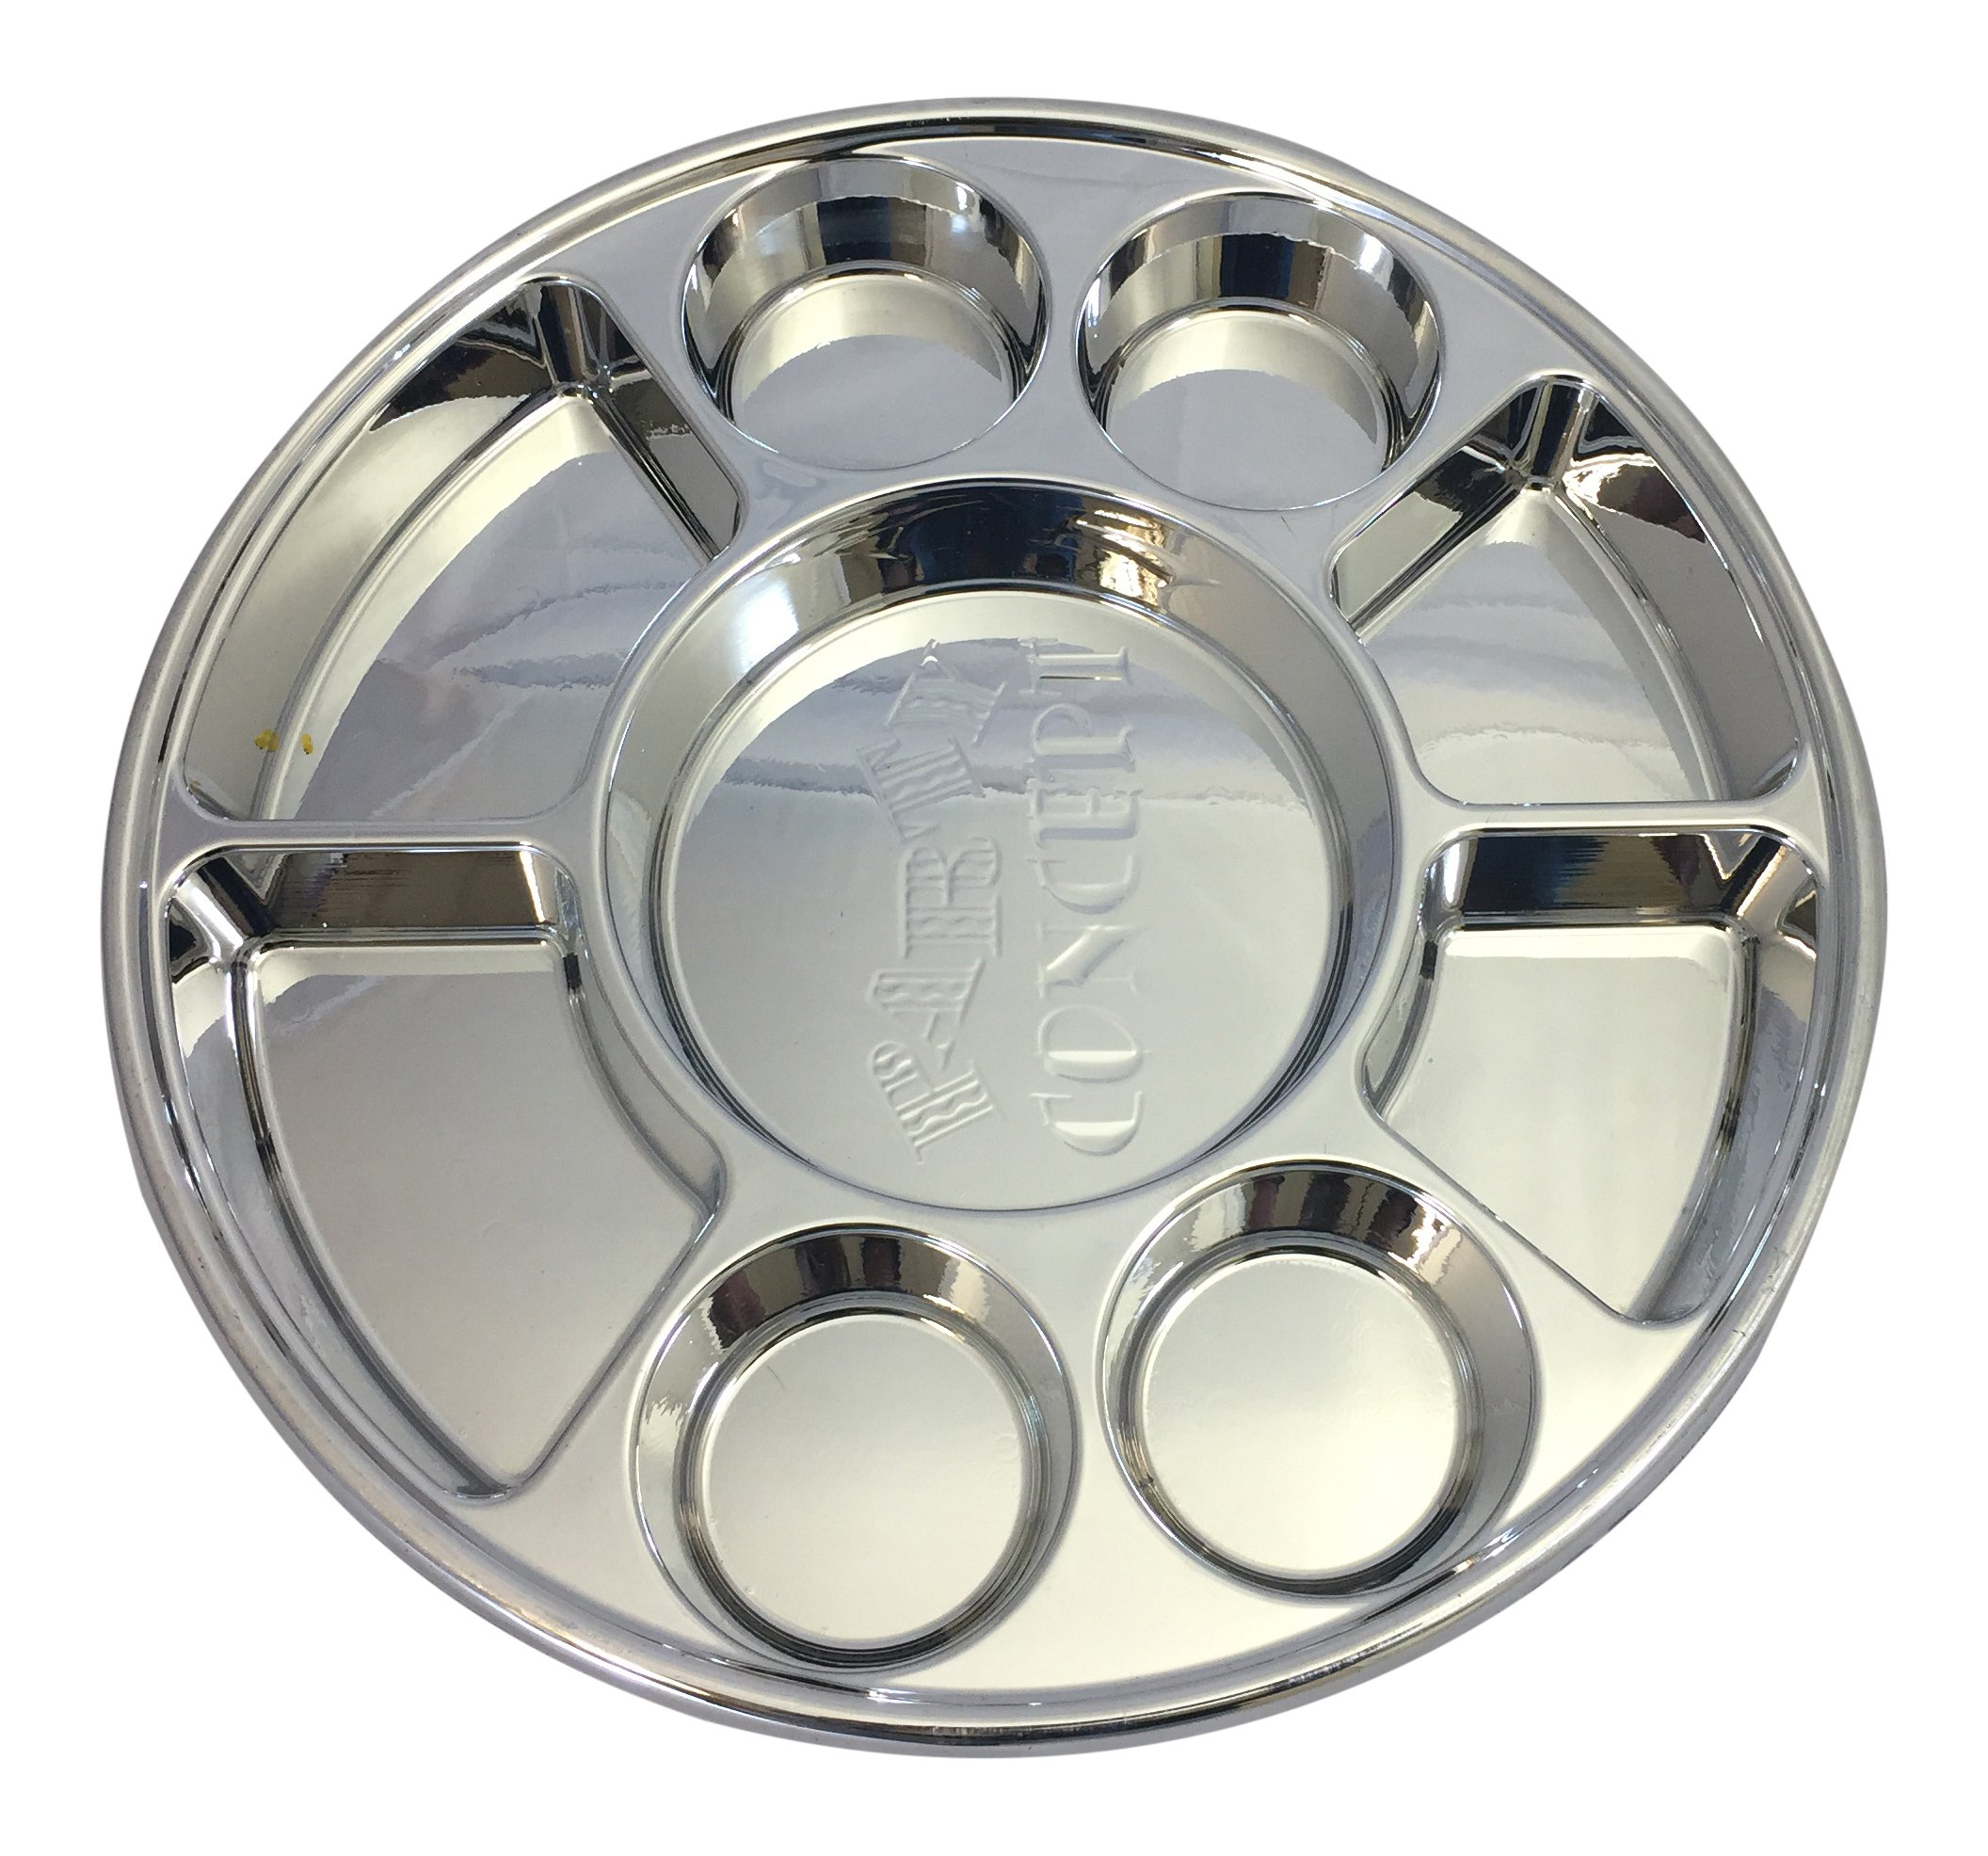 Movie Time Video 100 Piece 9 Compartments Round Disposable Party Tray/Thali/Plates, Silver